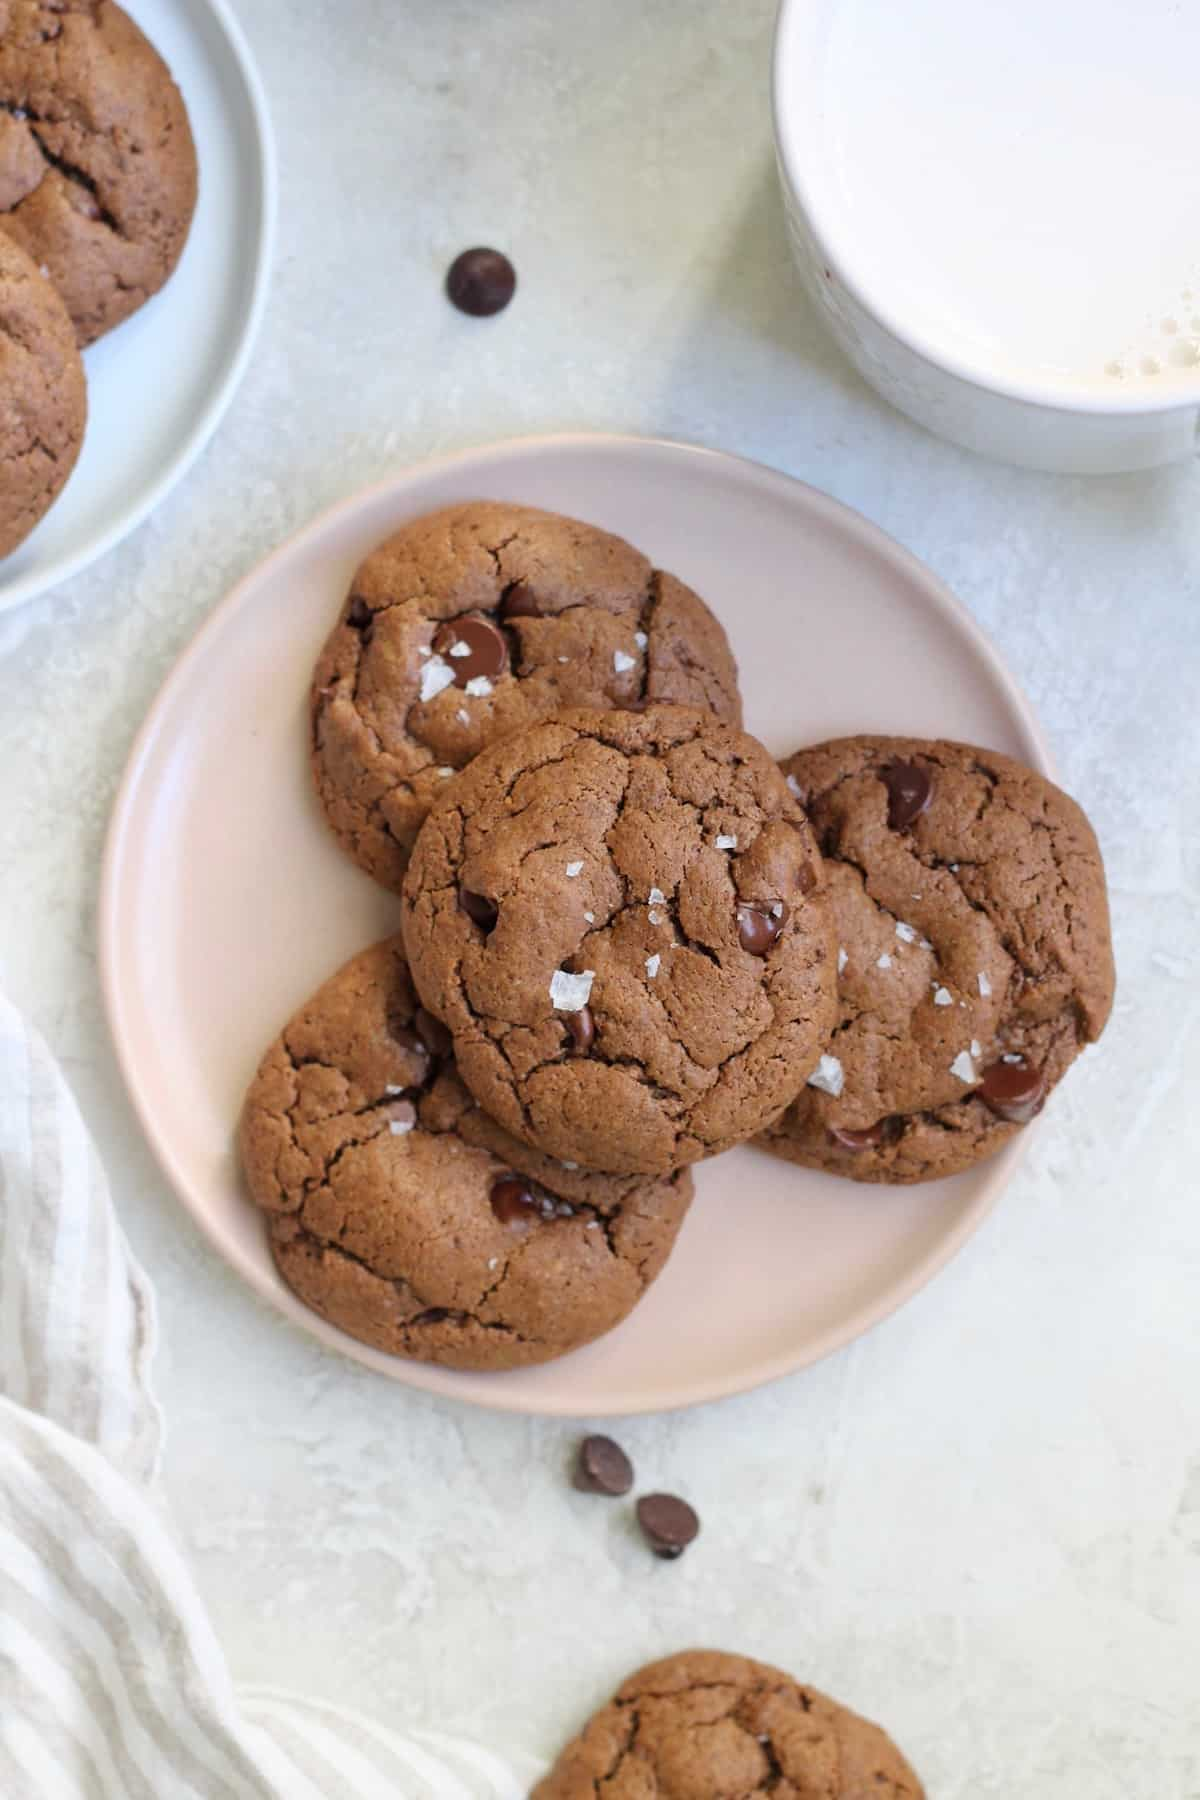 bowl of four chocolate cookies